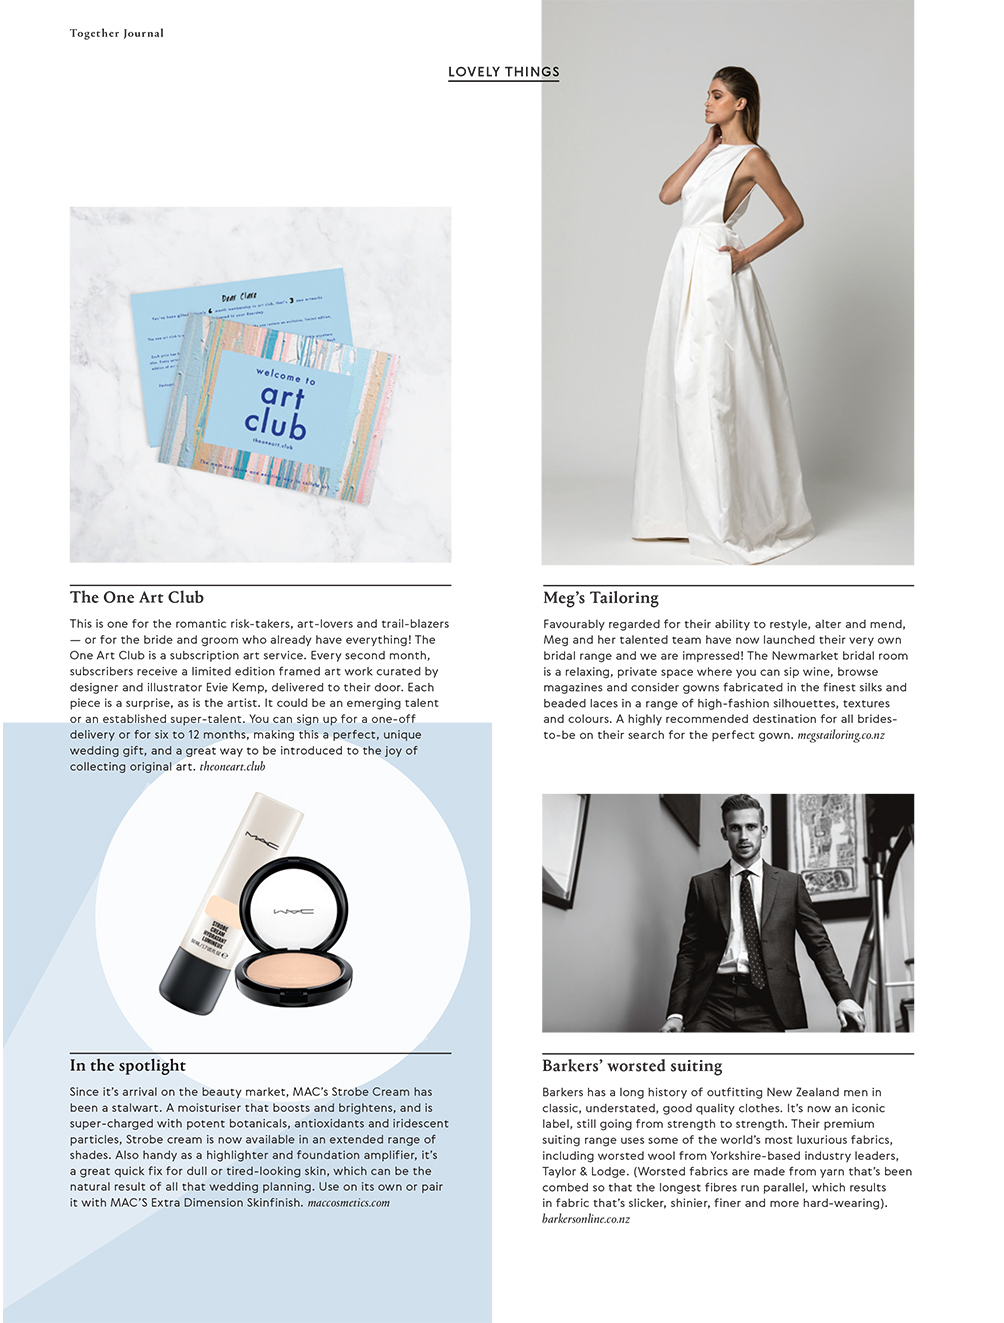 Categories: Weddings-Lovely Things - Issue 6